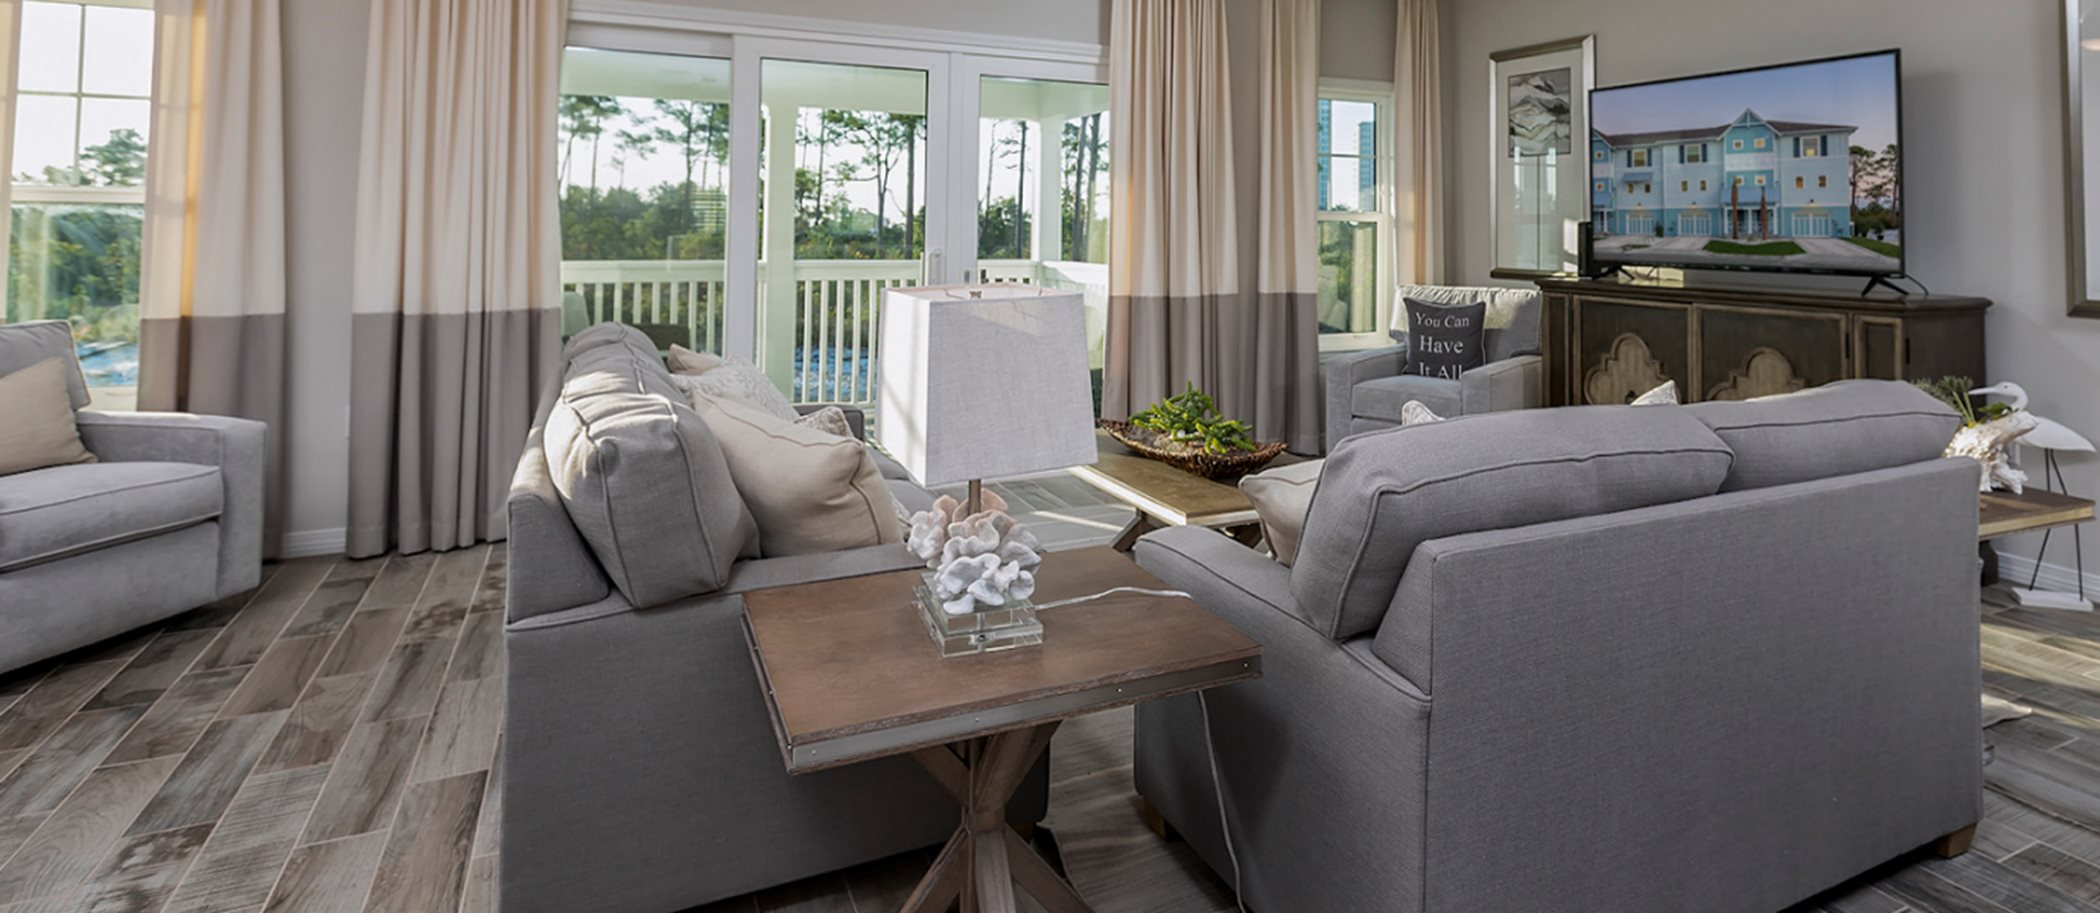 Lost Key Townhomes 3BR Townhome Living Room